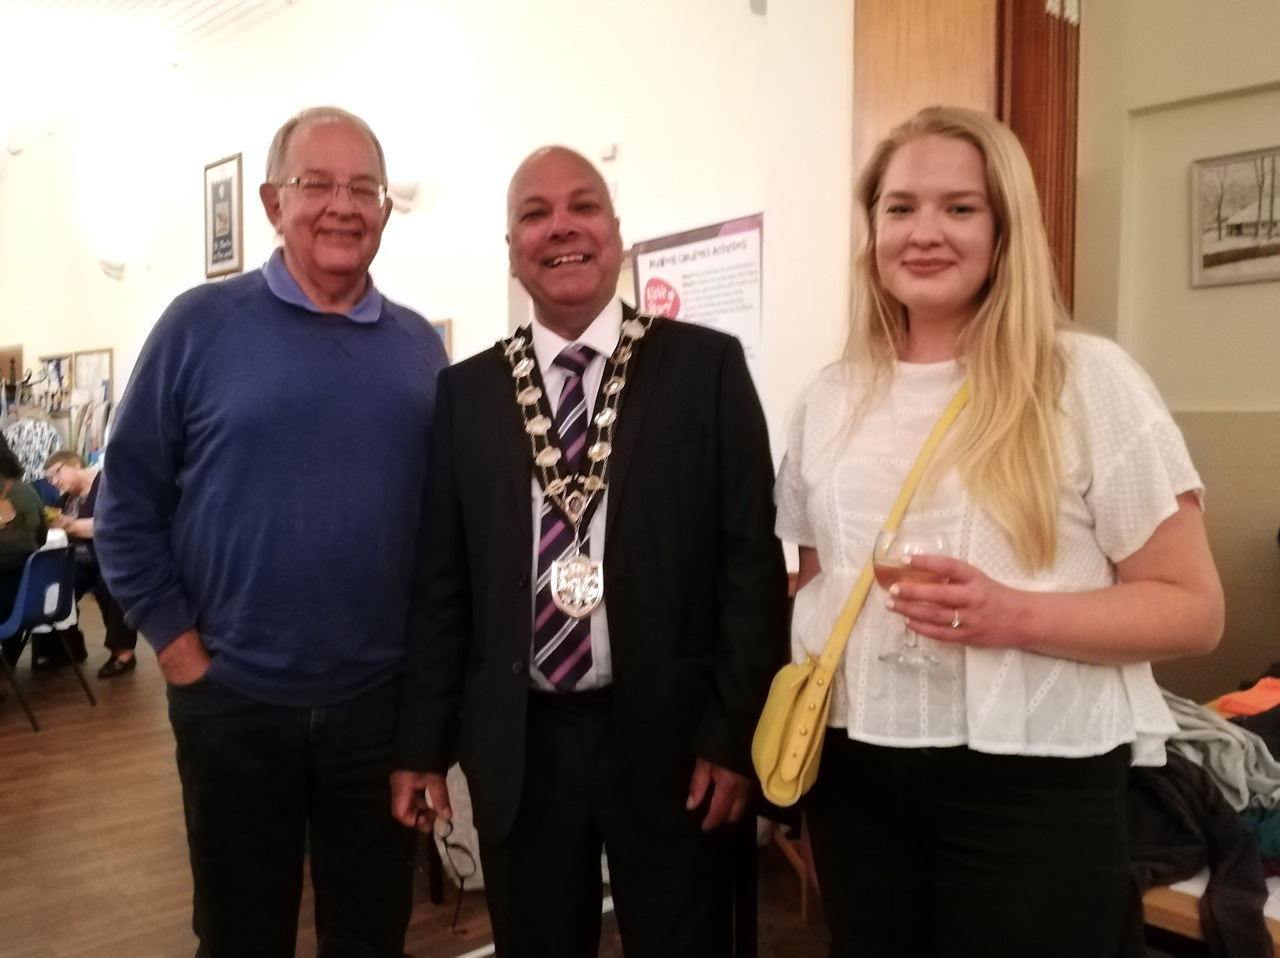 Eastleigh's Mayor Councillor Darshan Mann with Duncan and his daughter Sophie.